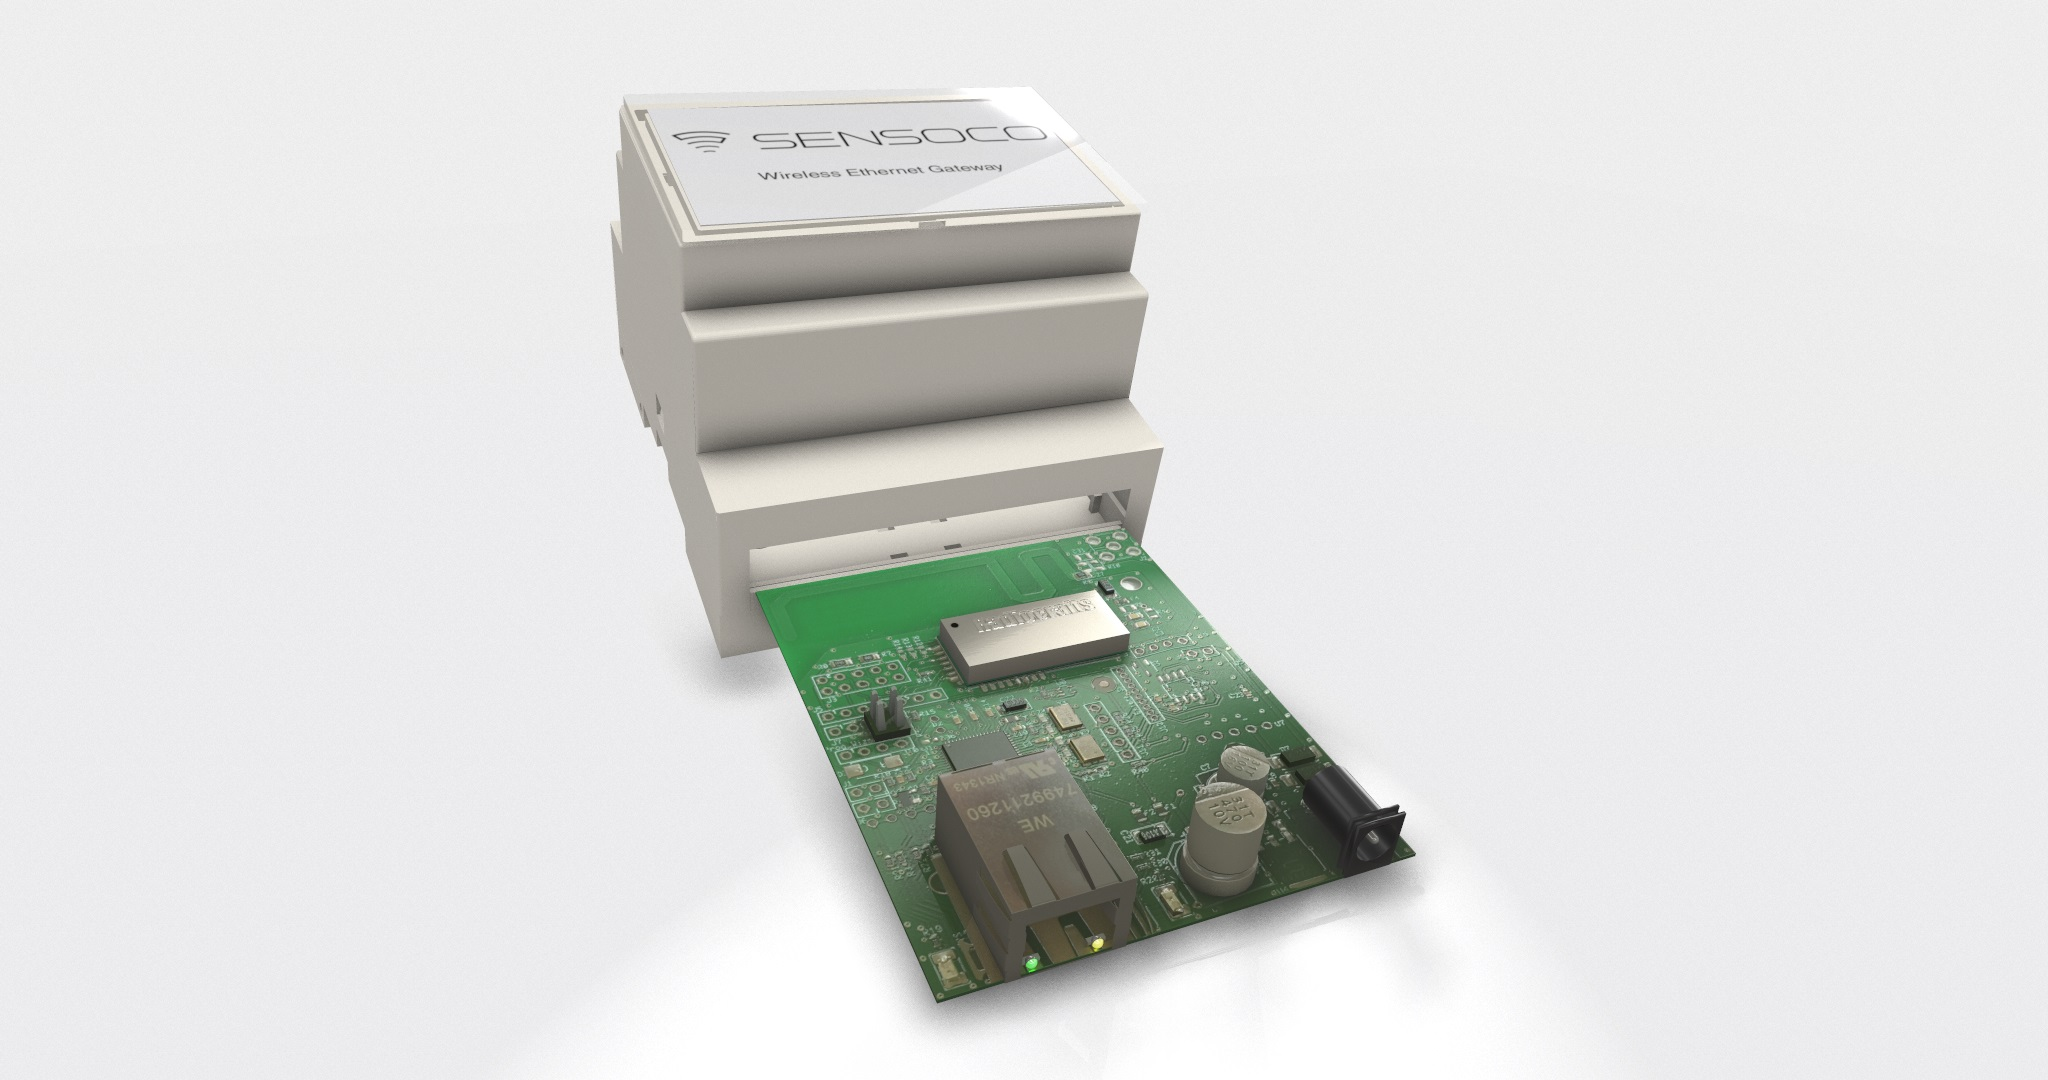 Sensoco-Wireless-Ethernet-Gateway-02.jpg